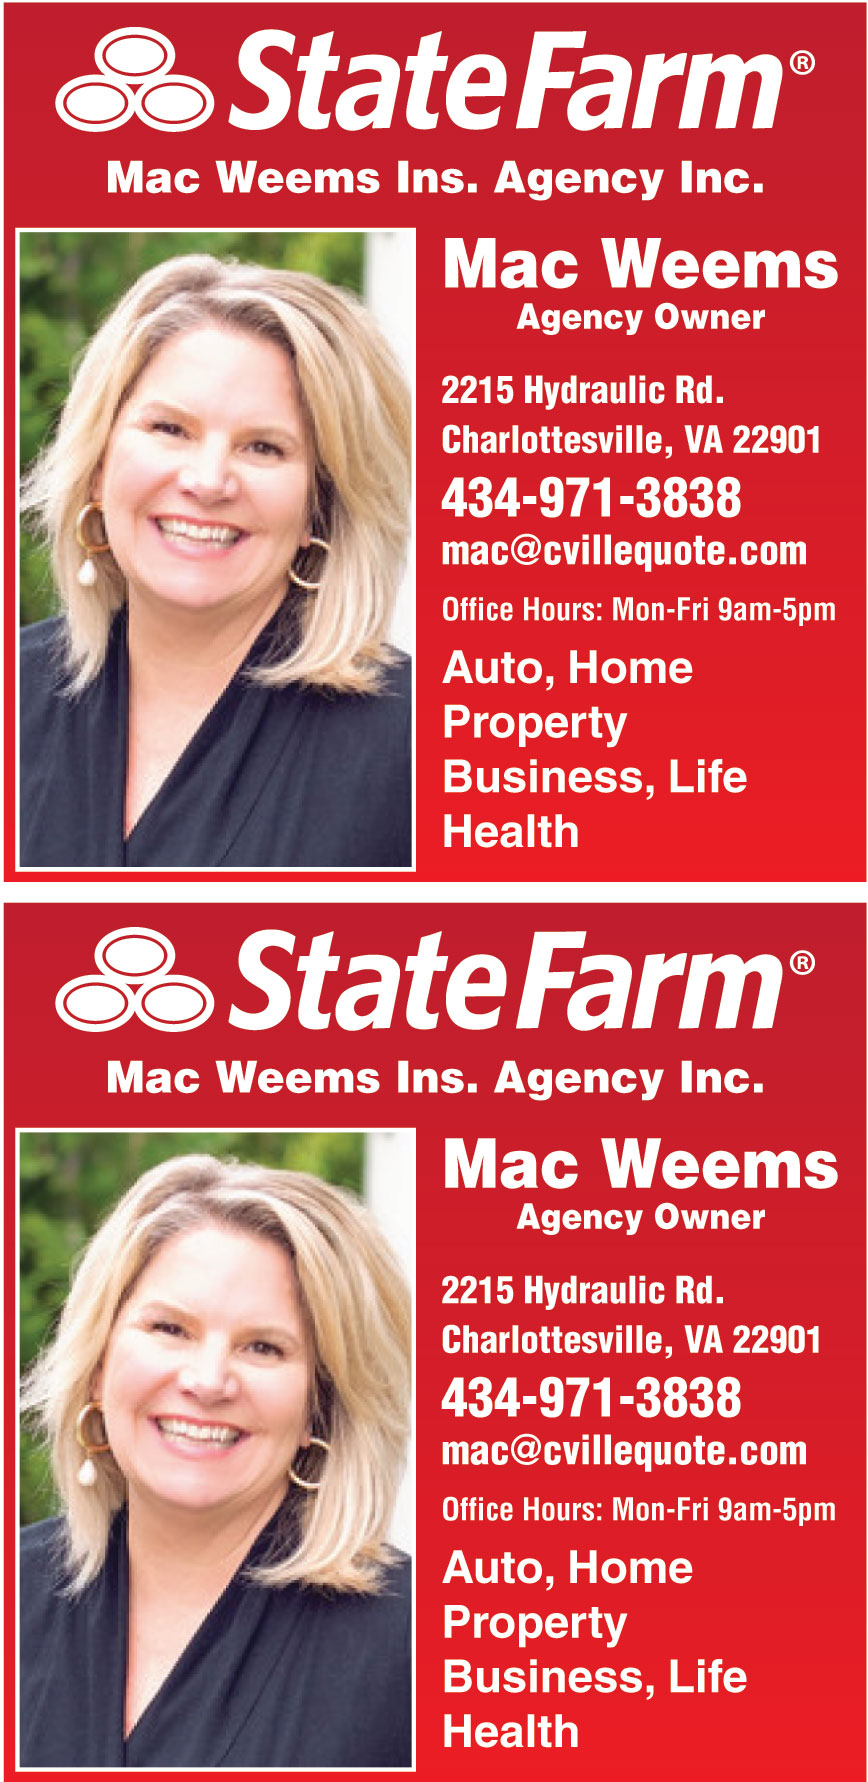 STATE FARM MAC WEEMS